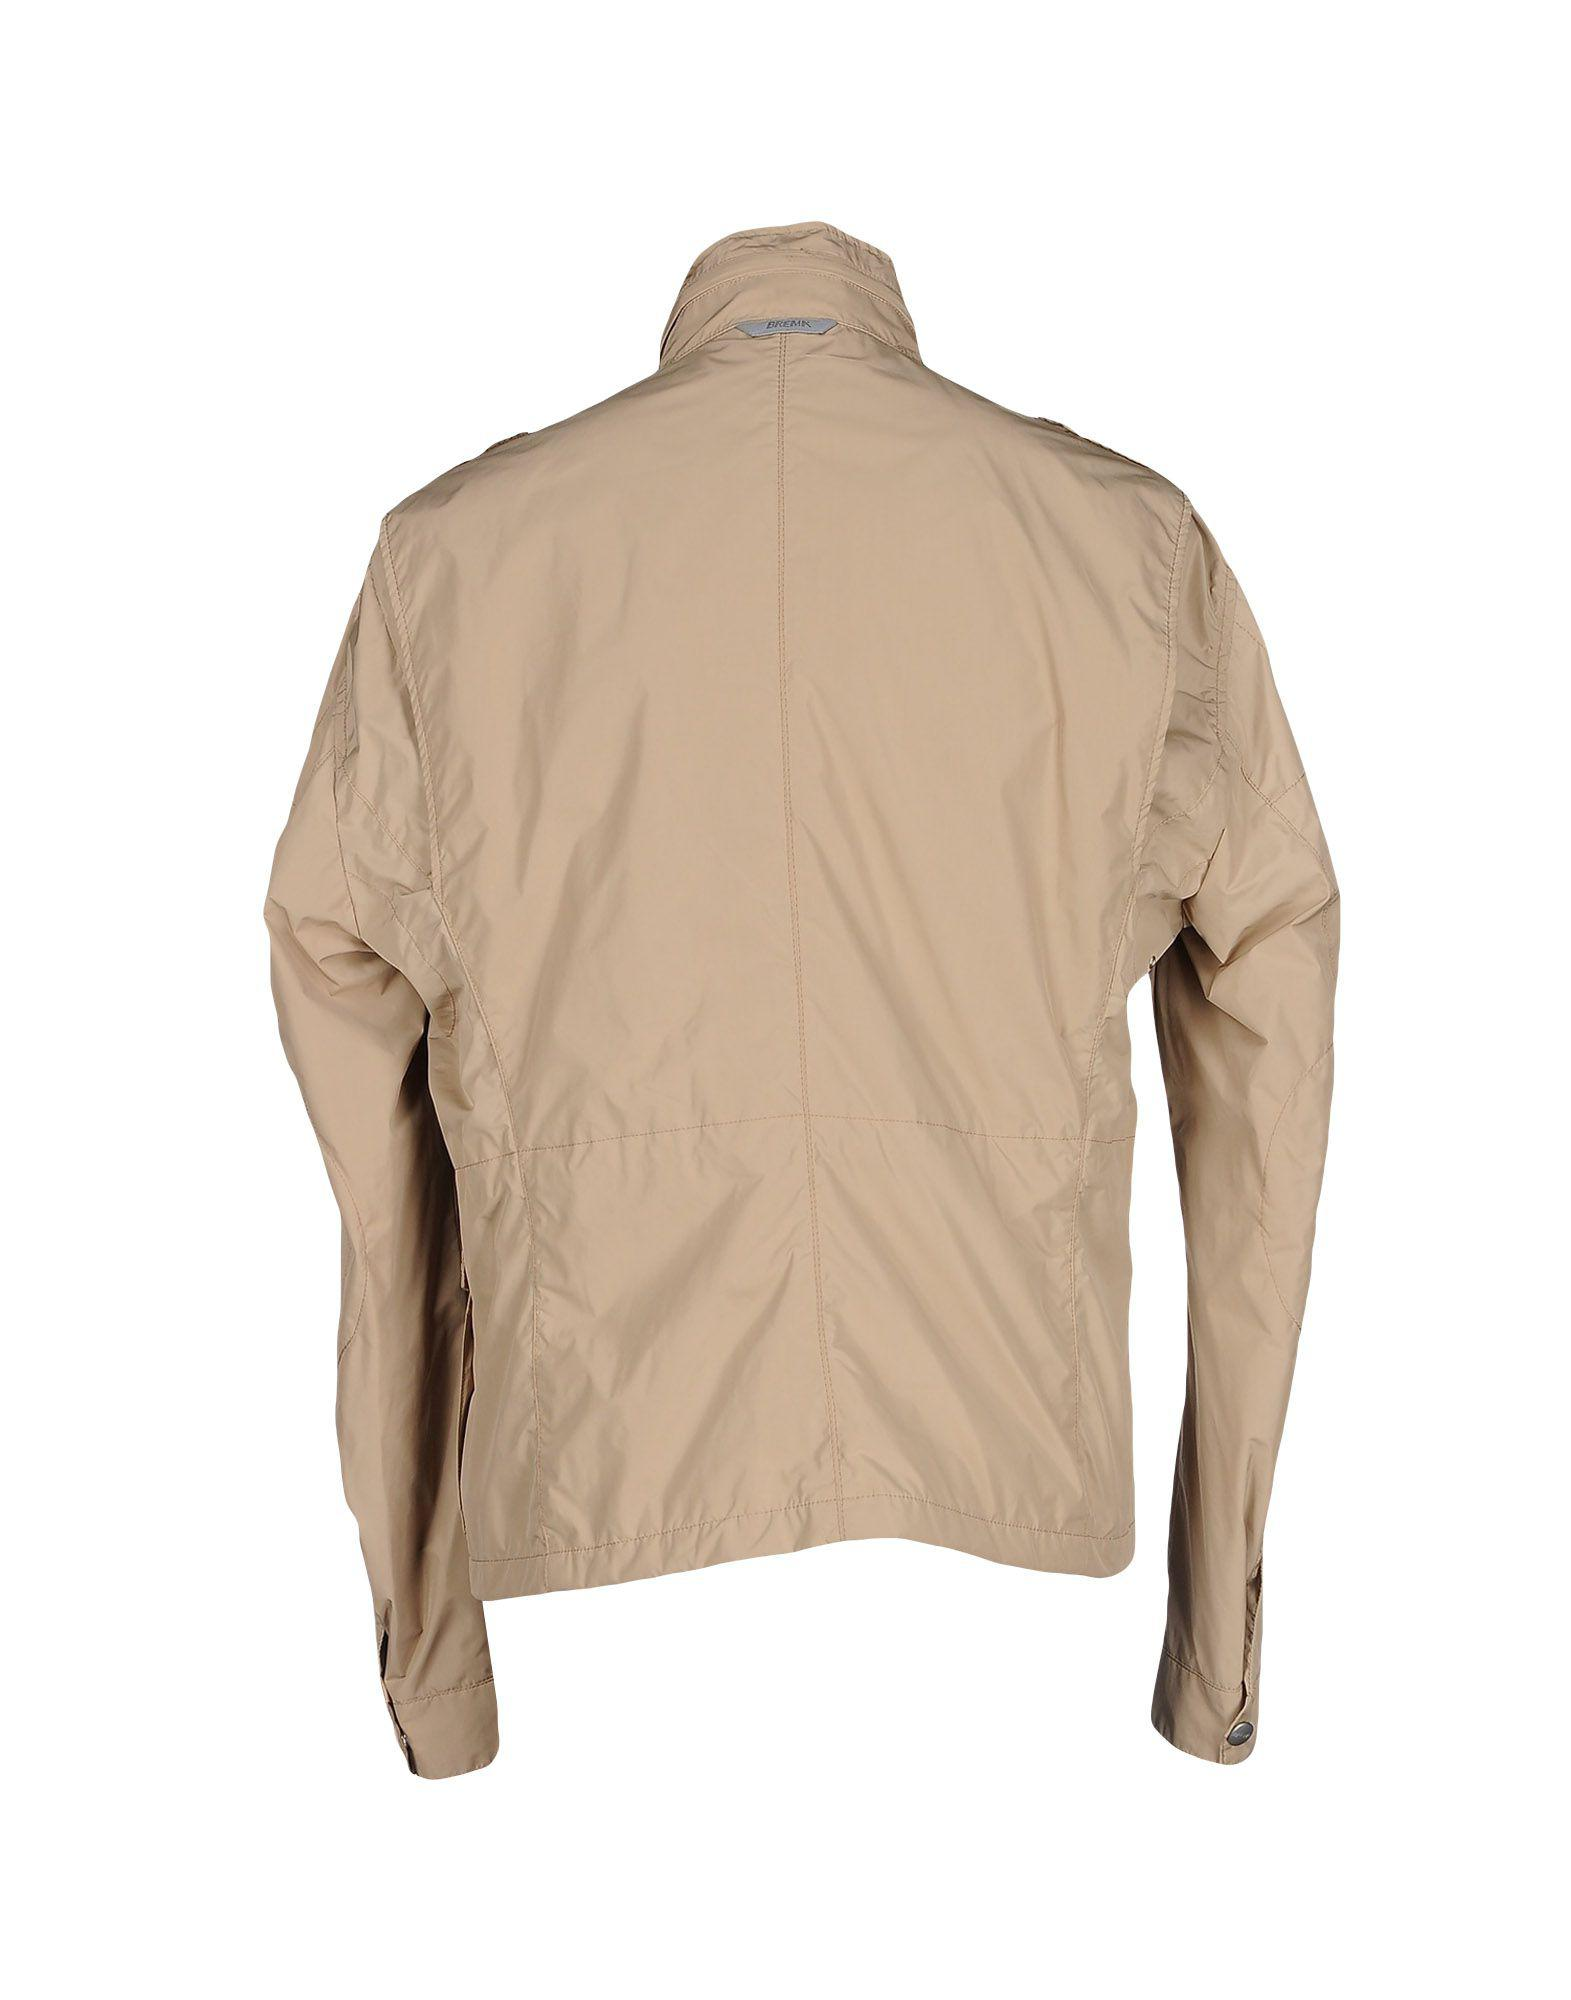 Brema Synthetic Jacket for Men